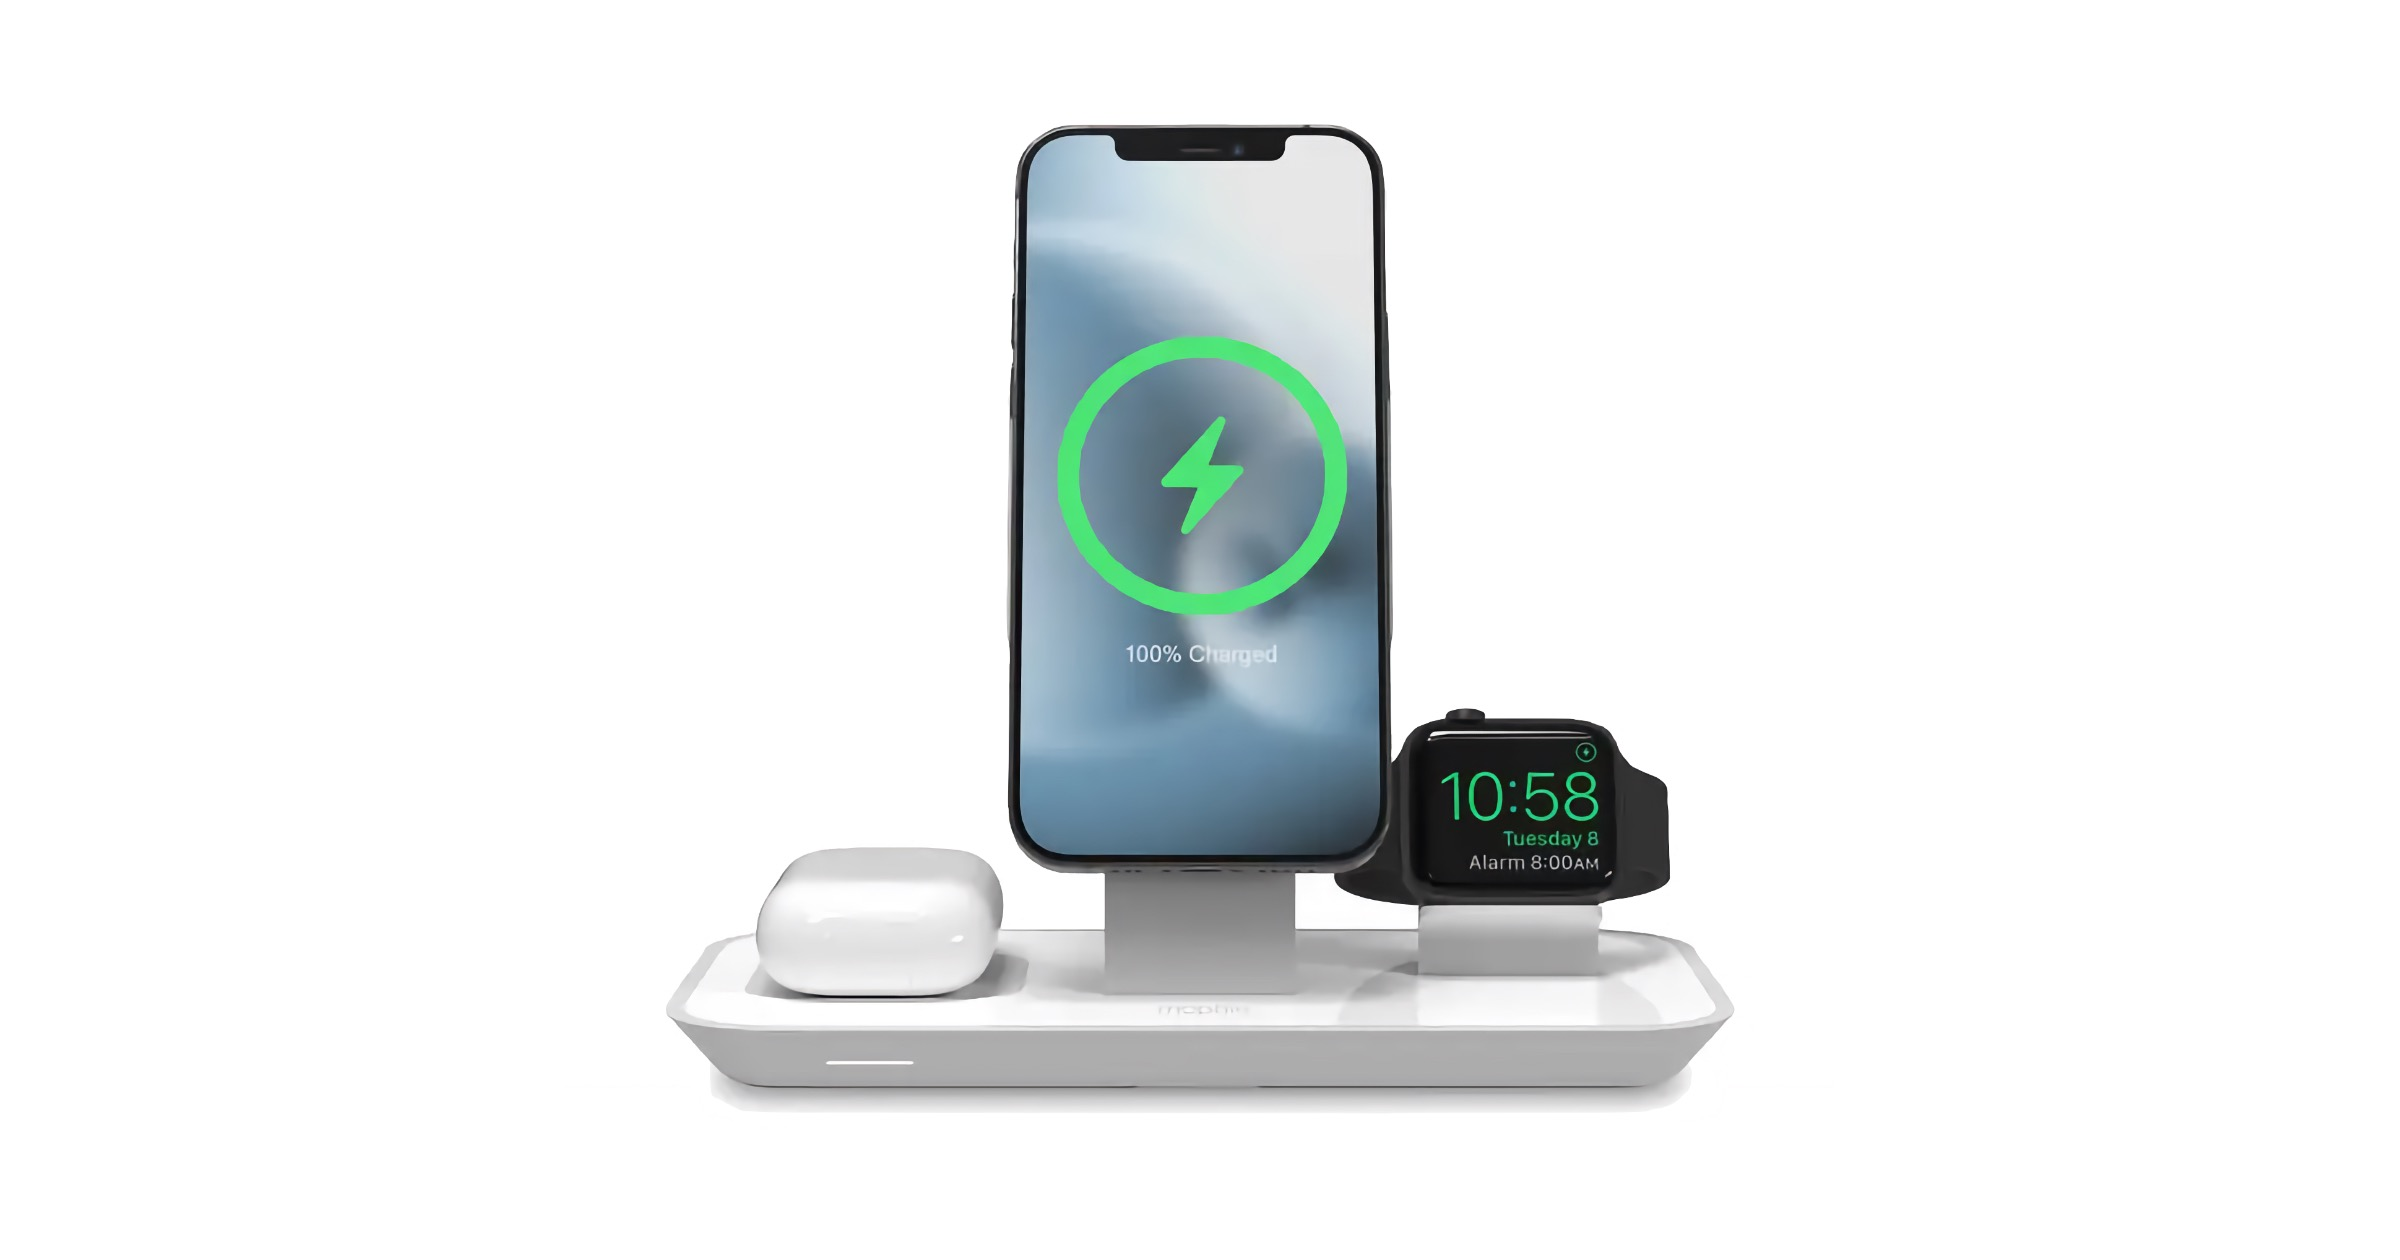 Mophie 3-in-1 charging stand